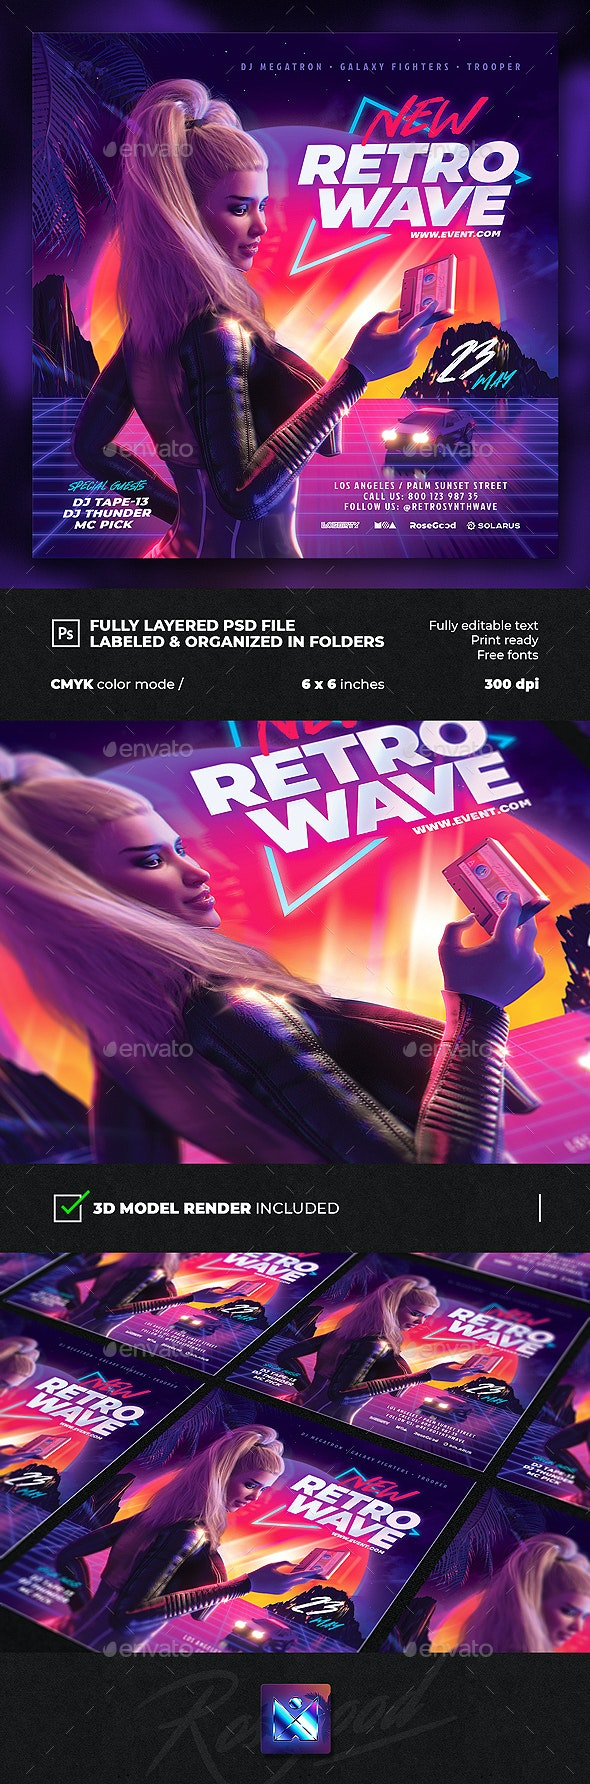 Party Flyer New Retrowave - Clubs & Parties Events